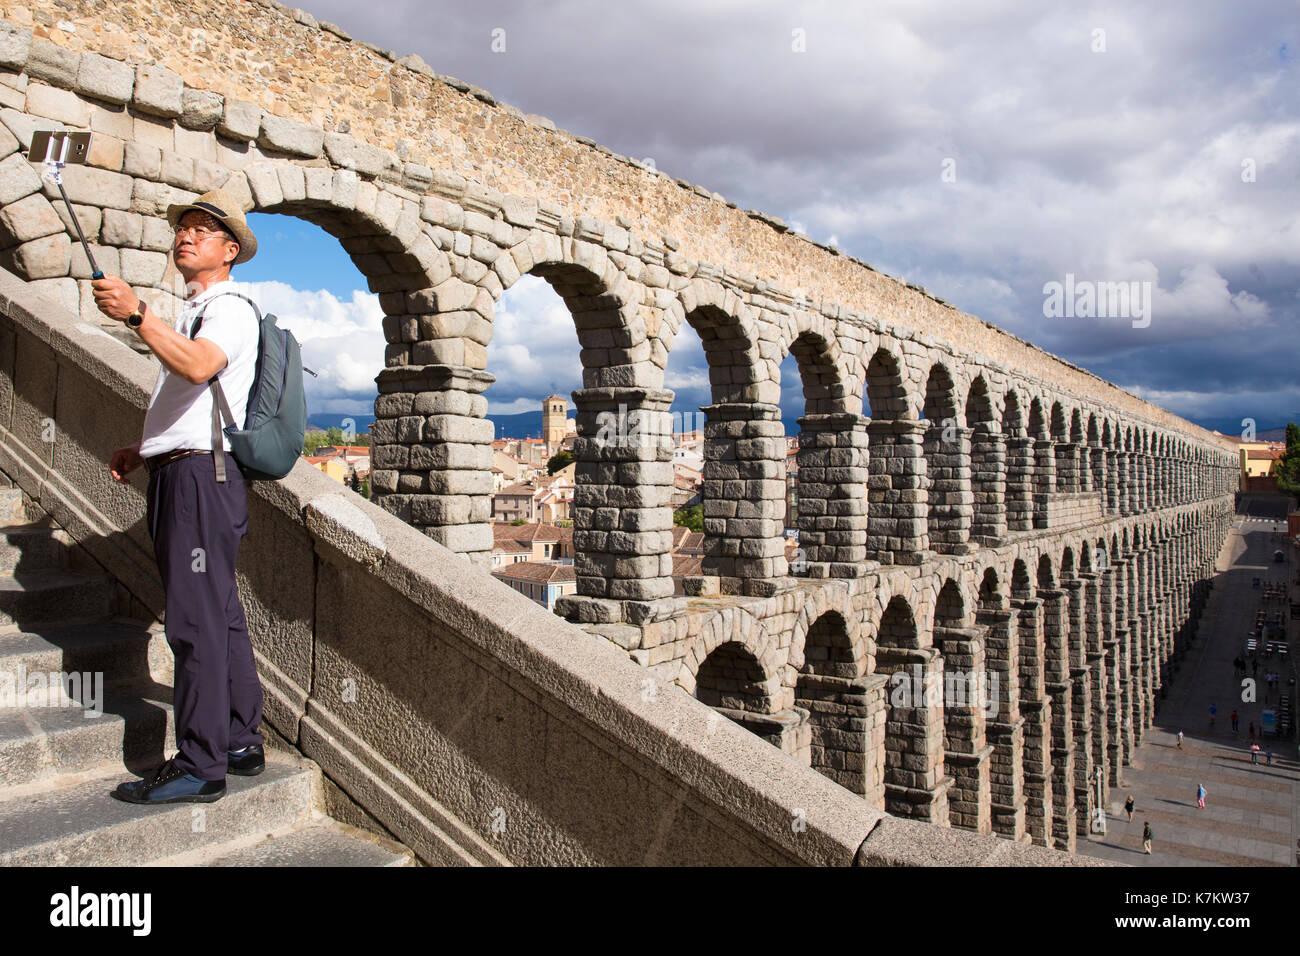 Tourist taking selfie photographs with smartphone on selfie stick at famous spectacular Roman aqueduct, Segovia, - Stock Image